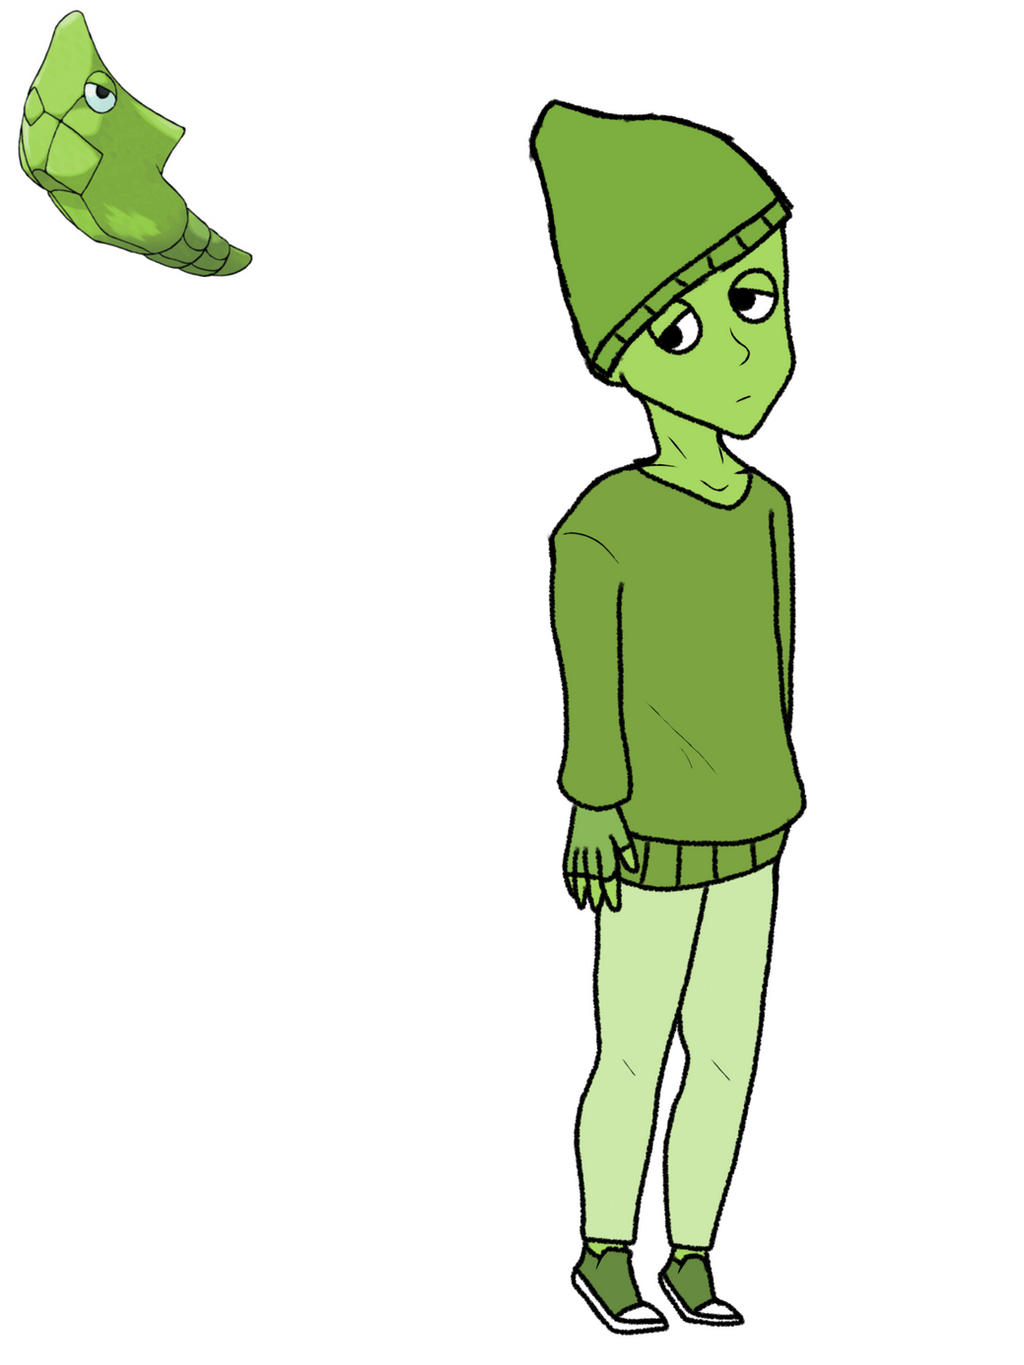 Gijinka Metapod by Vocaloidlolls21 on DeviantArt